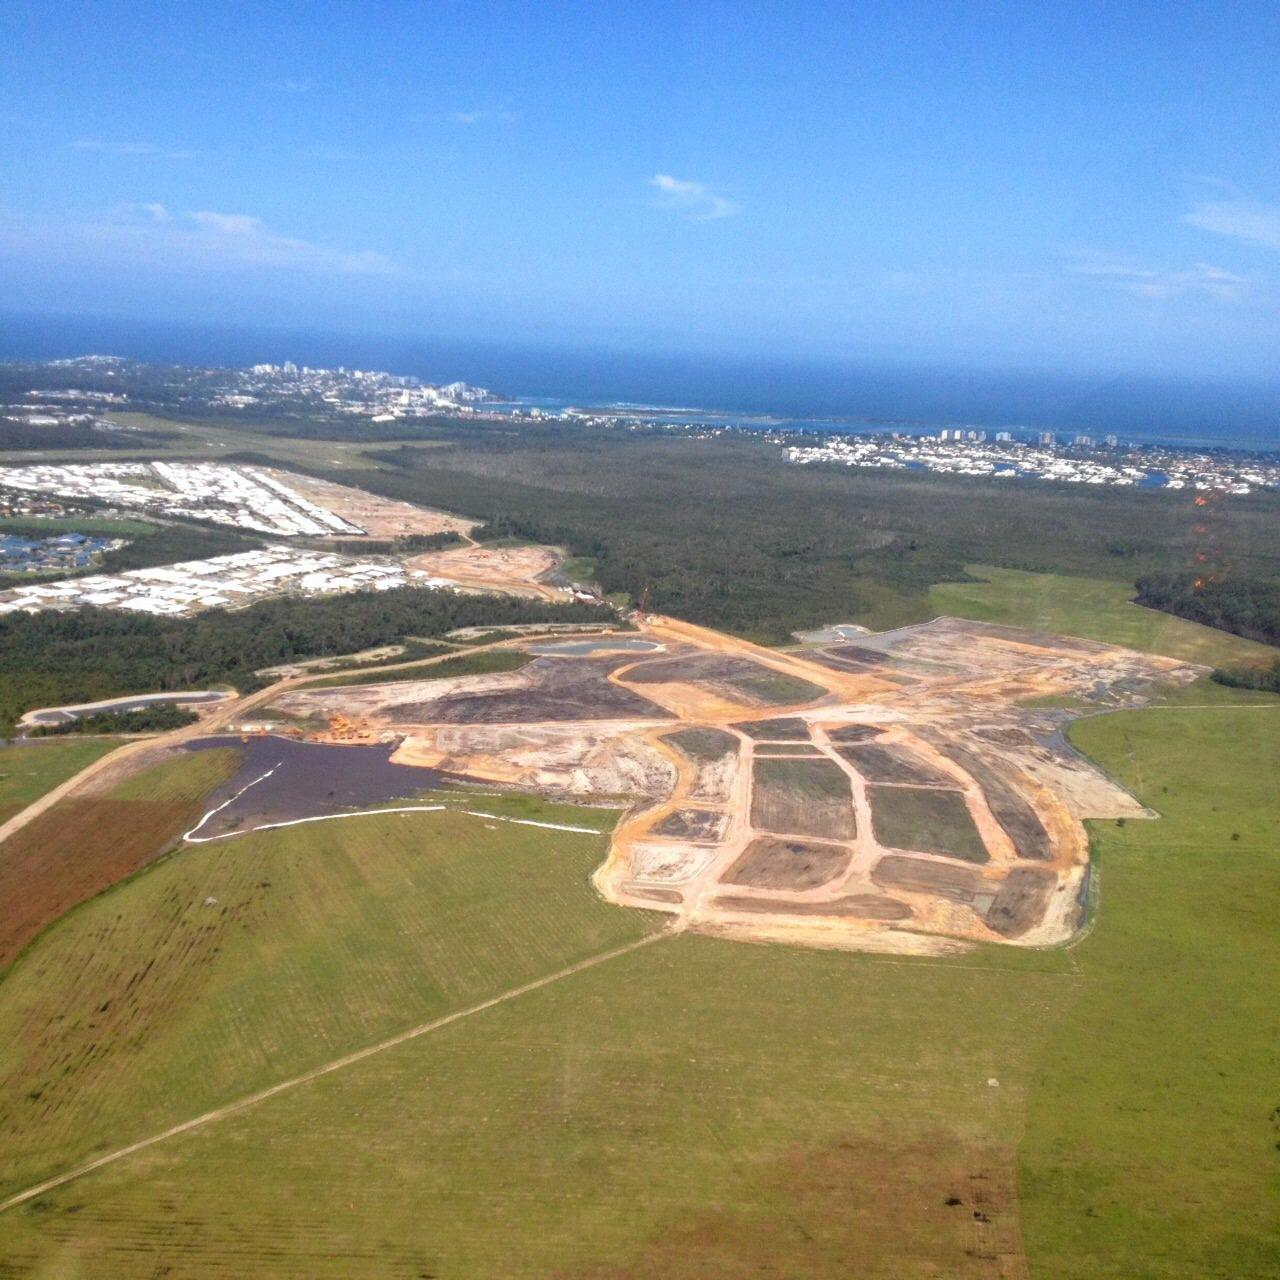 An aerial view of Stockland's new Aura subdivision taking shape at Caloundra South.